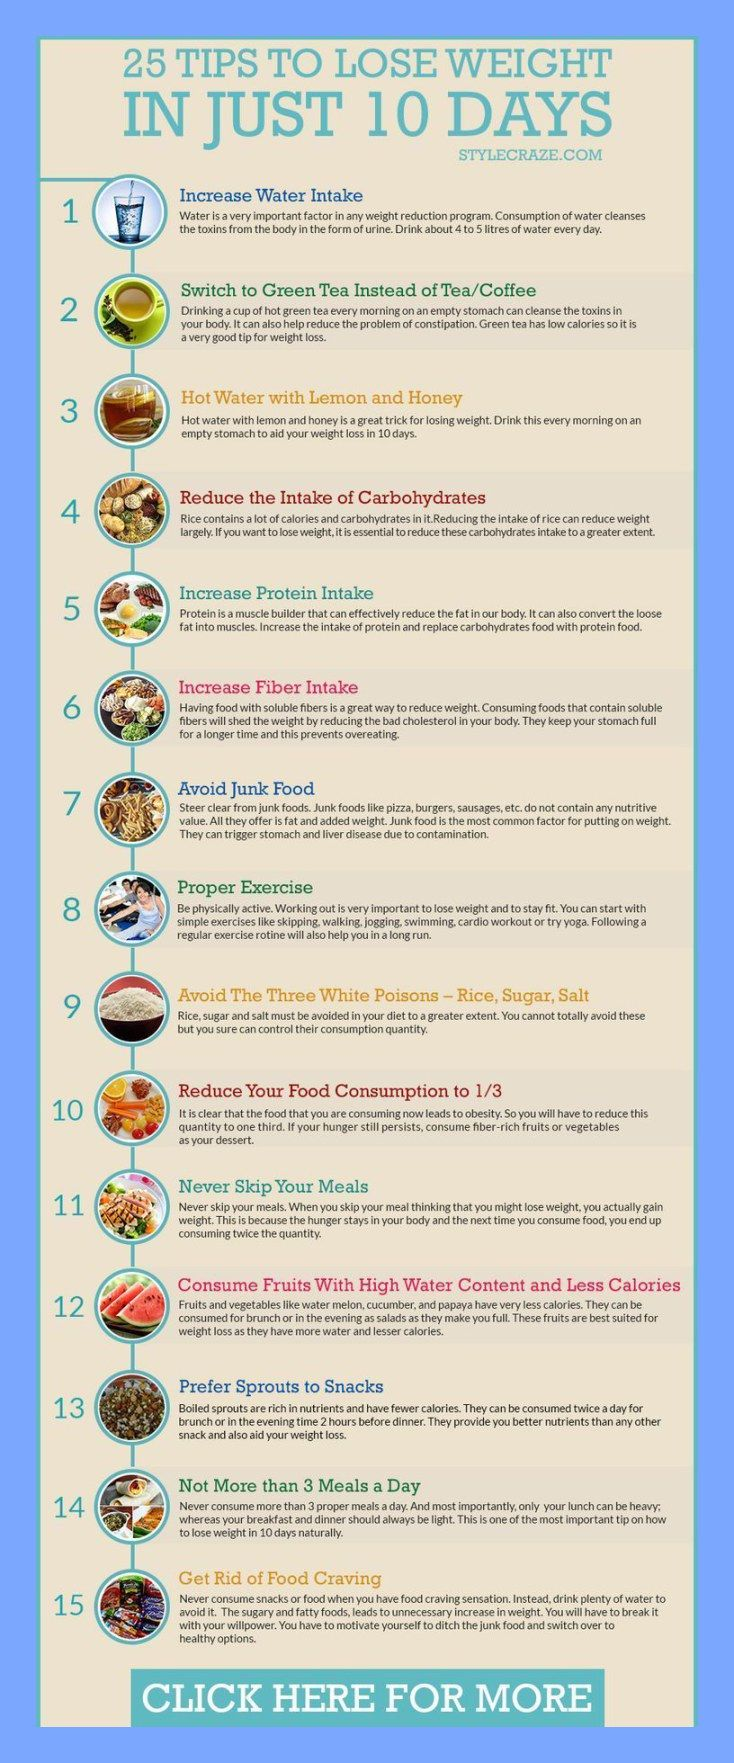 Pin On Latest Weight Loss Ideas